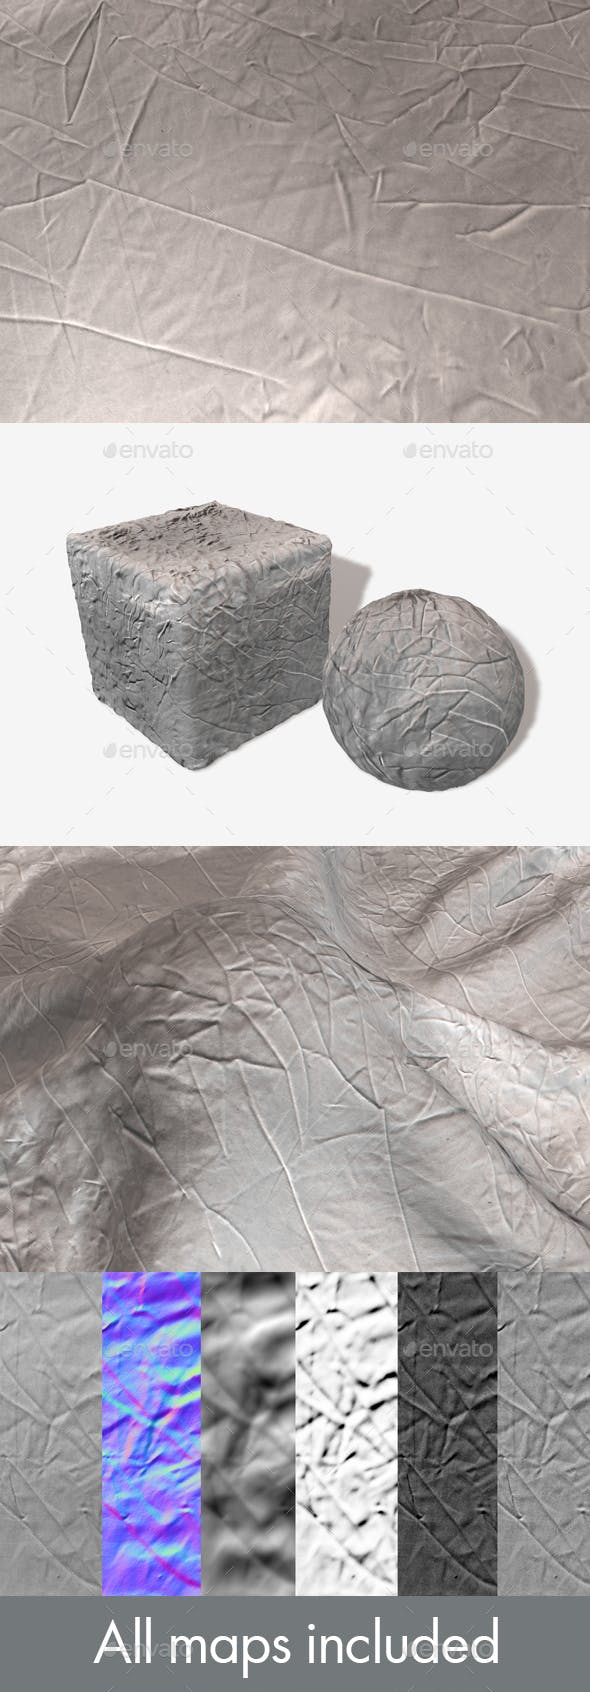 Creased Fabric Seamless Texture - 3DOcean Item for Sale